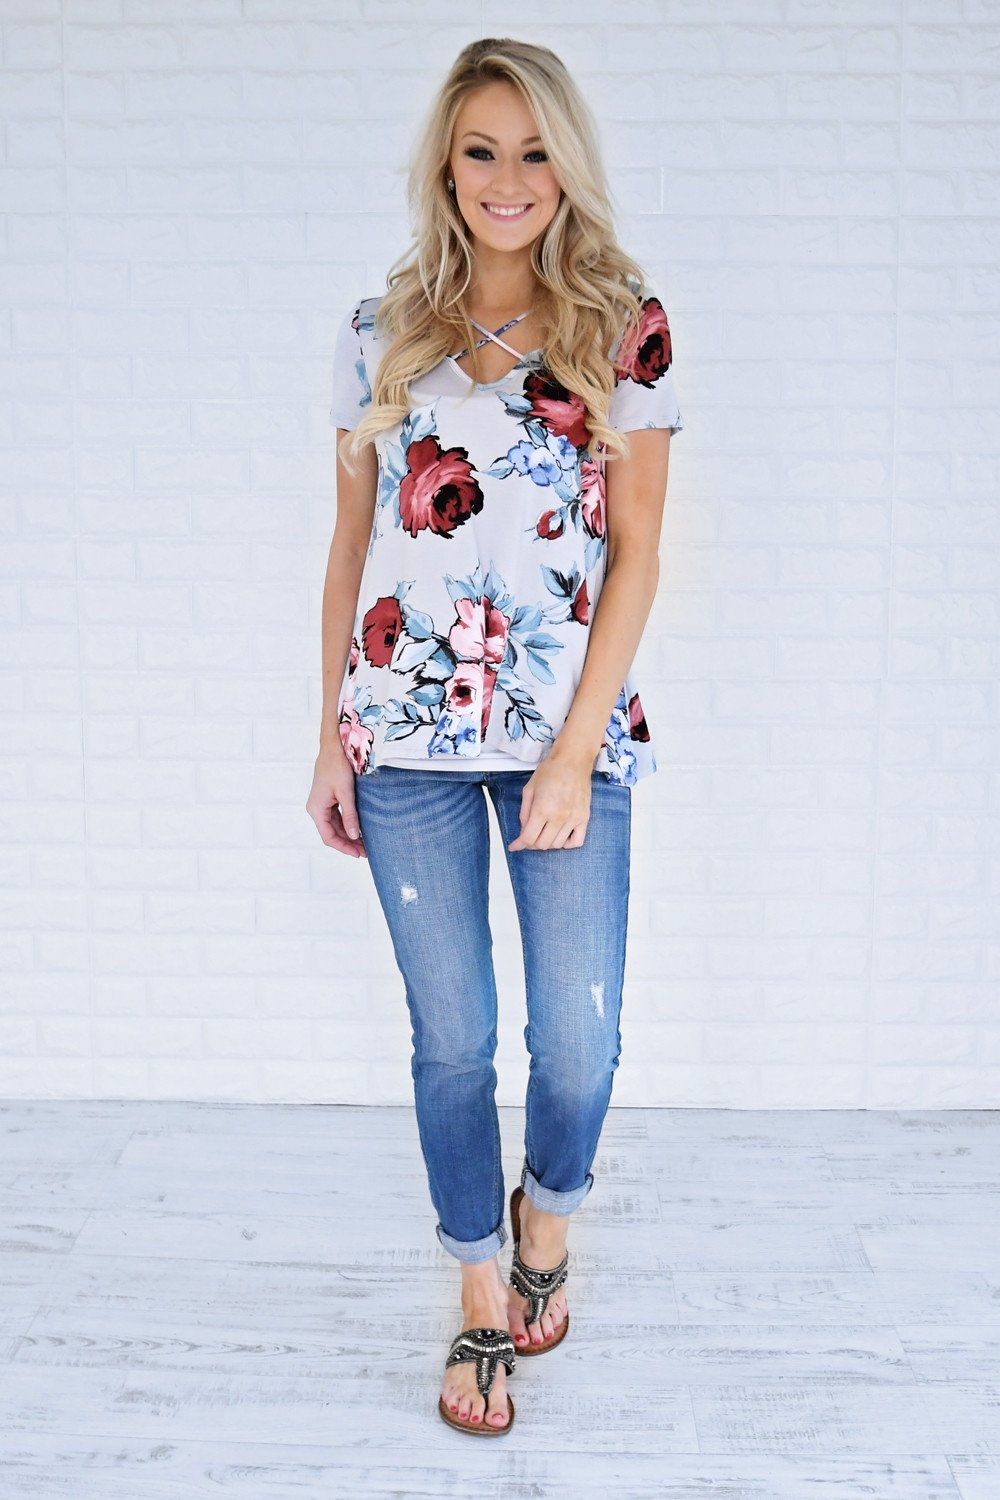 Flattering in Floral Criss Cross Top